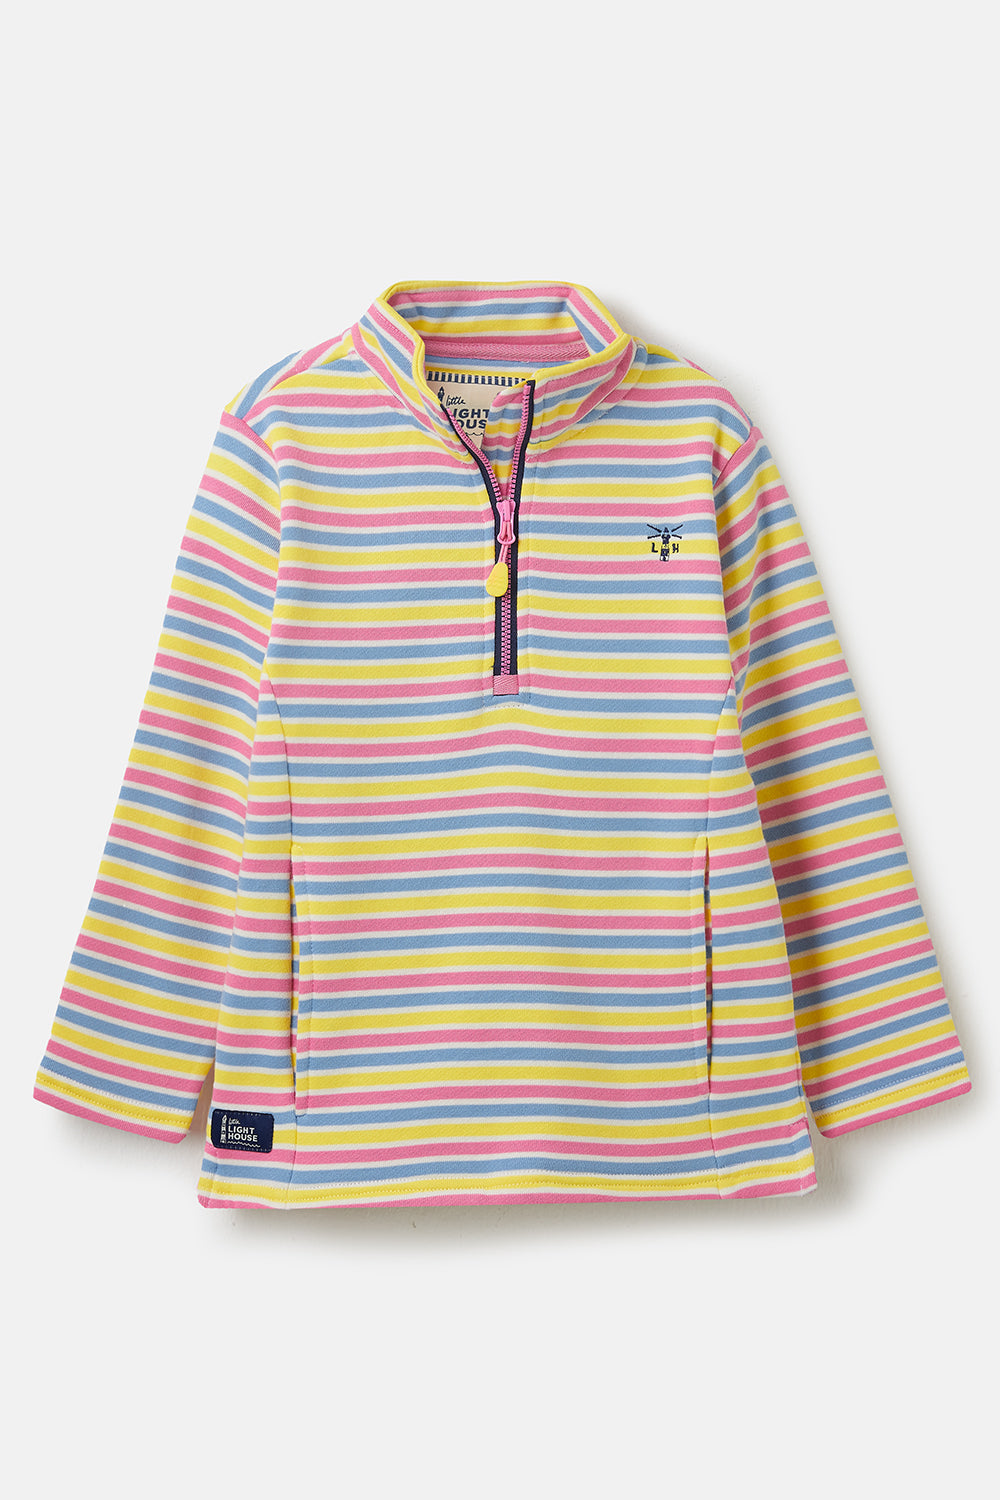 Robyn Sweatshirt - Multi Stripe